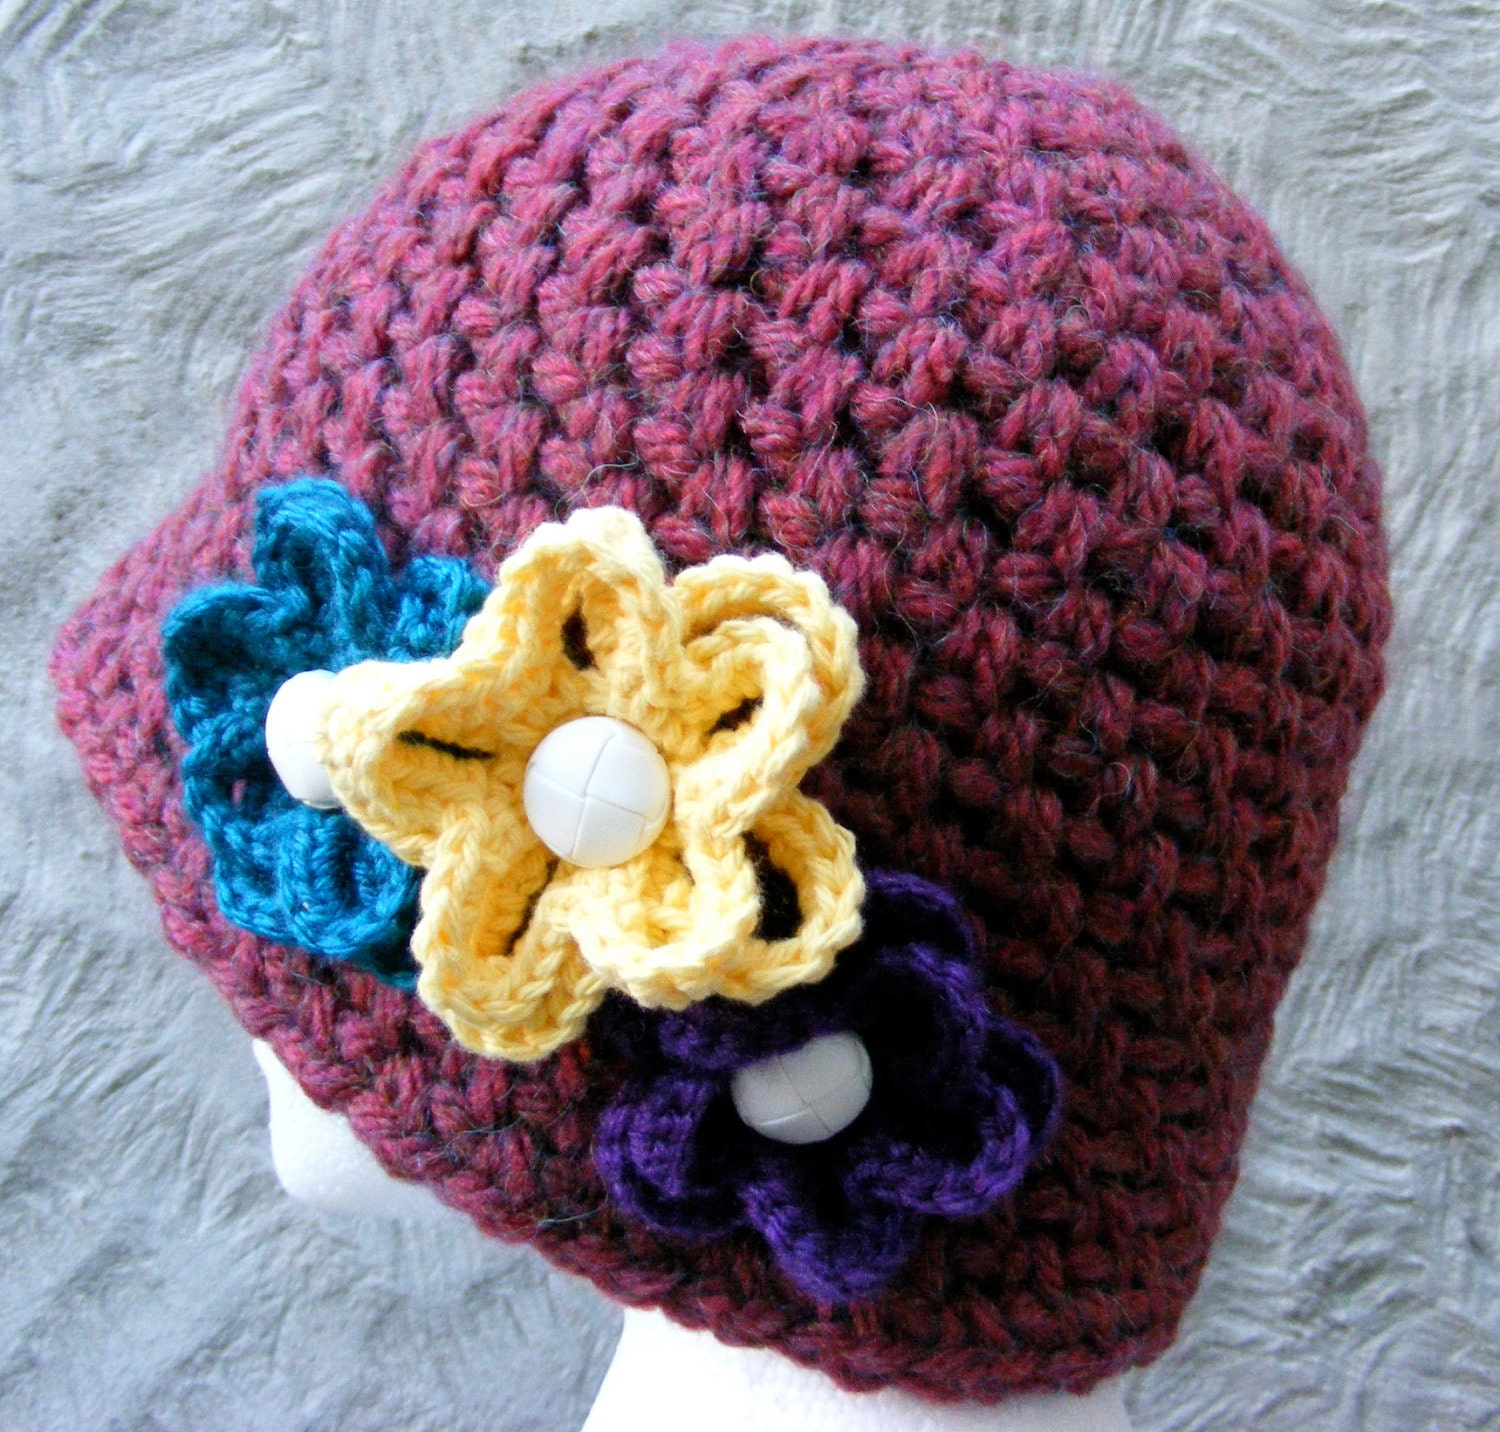 Crochet Hat Patterns For Winter : Items similar to Hat Crochet PATTERN - Ladies Winter Hat ...